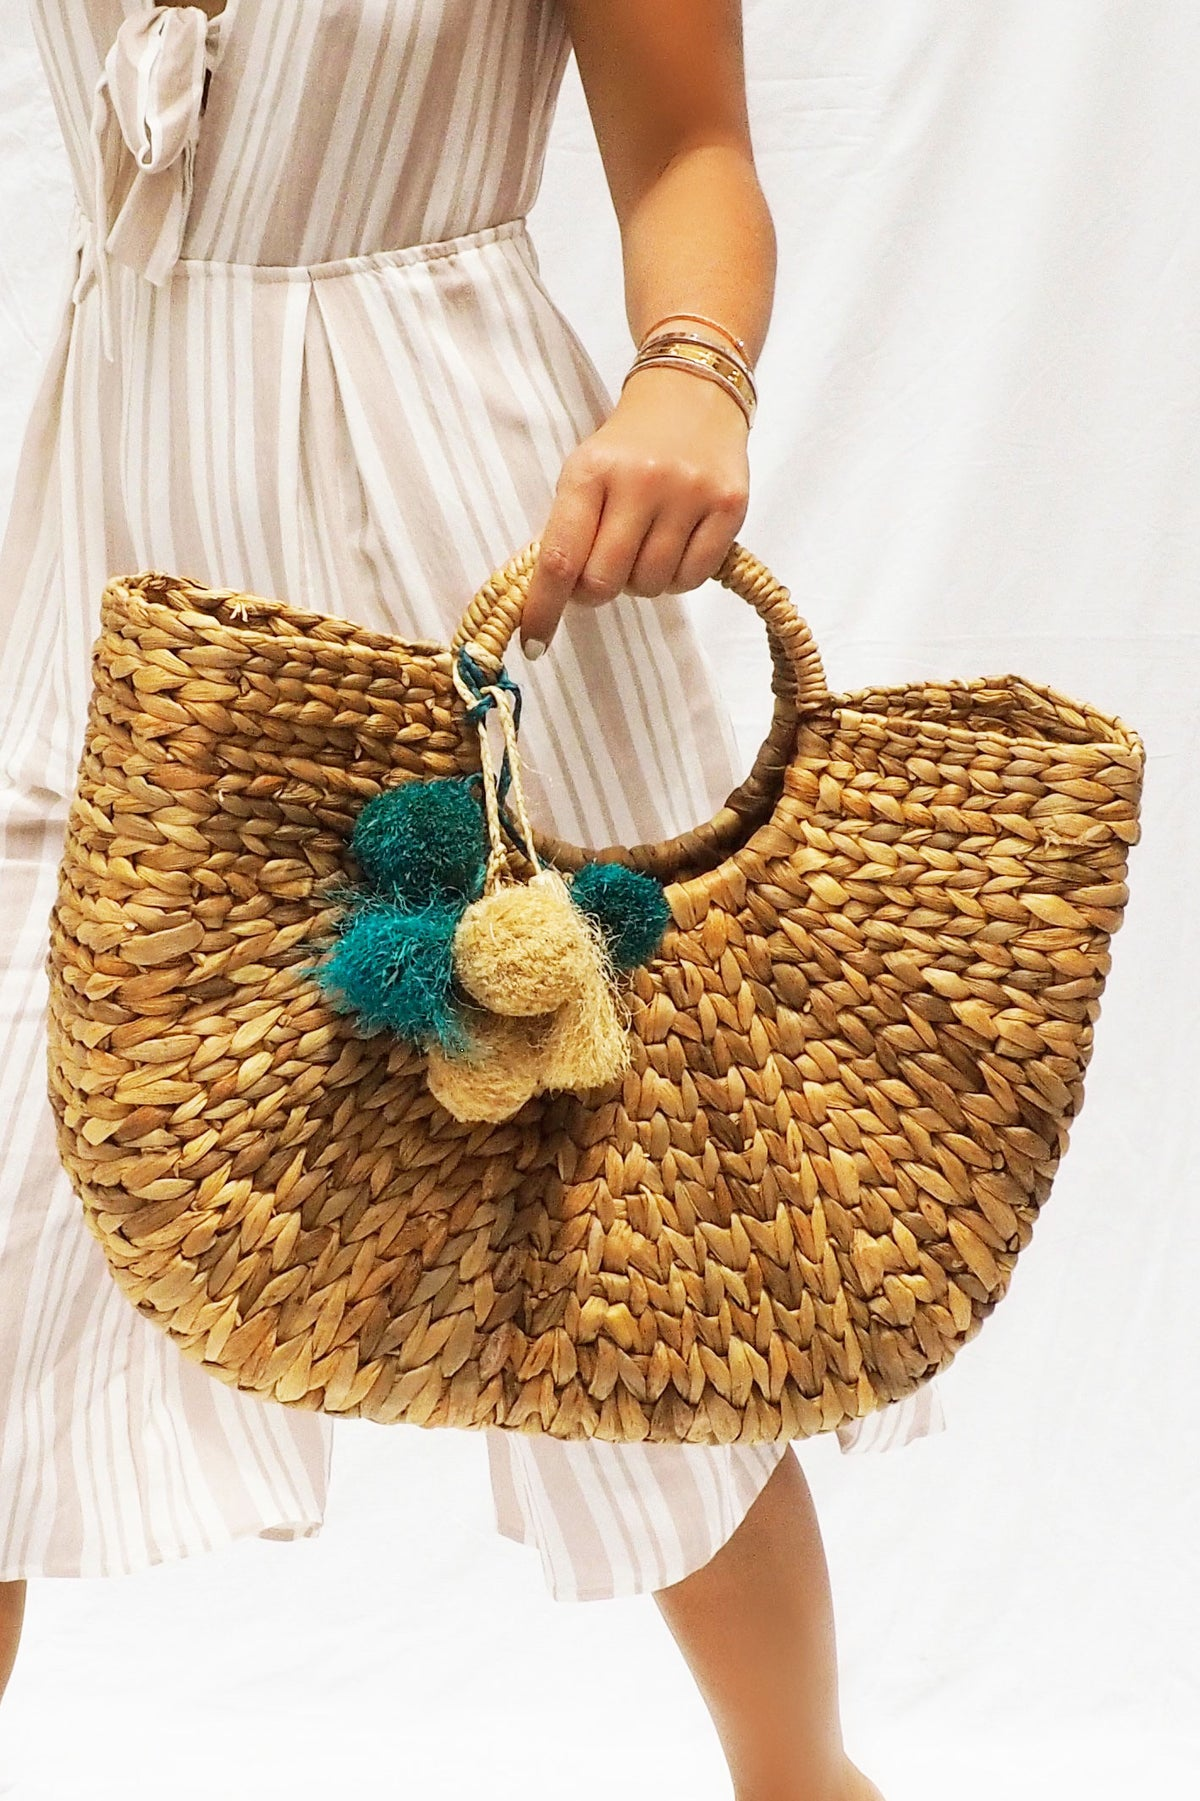 THE WILD LOVE WOVEN BAG - You.